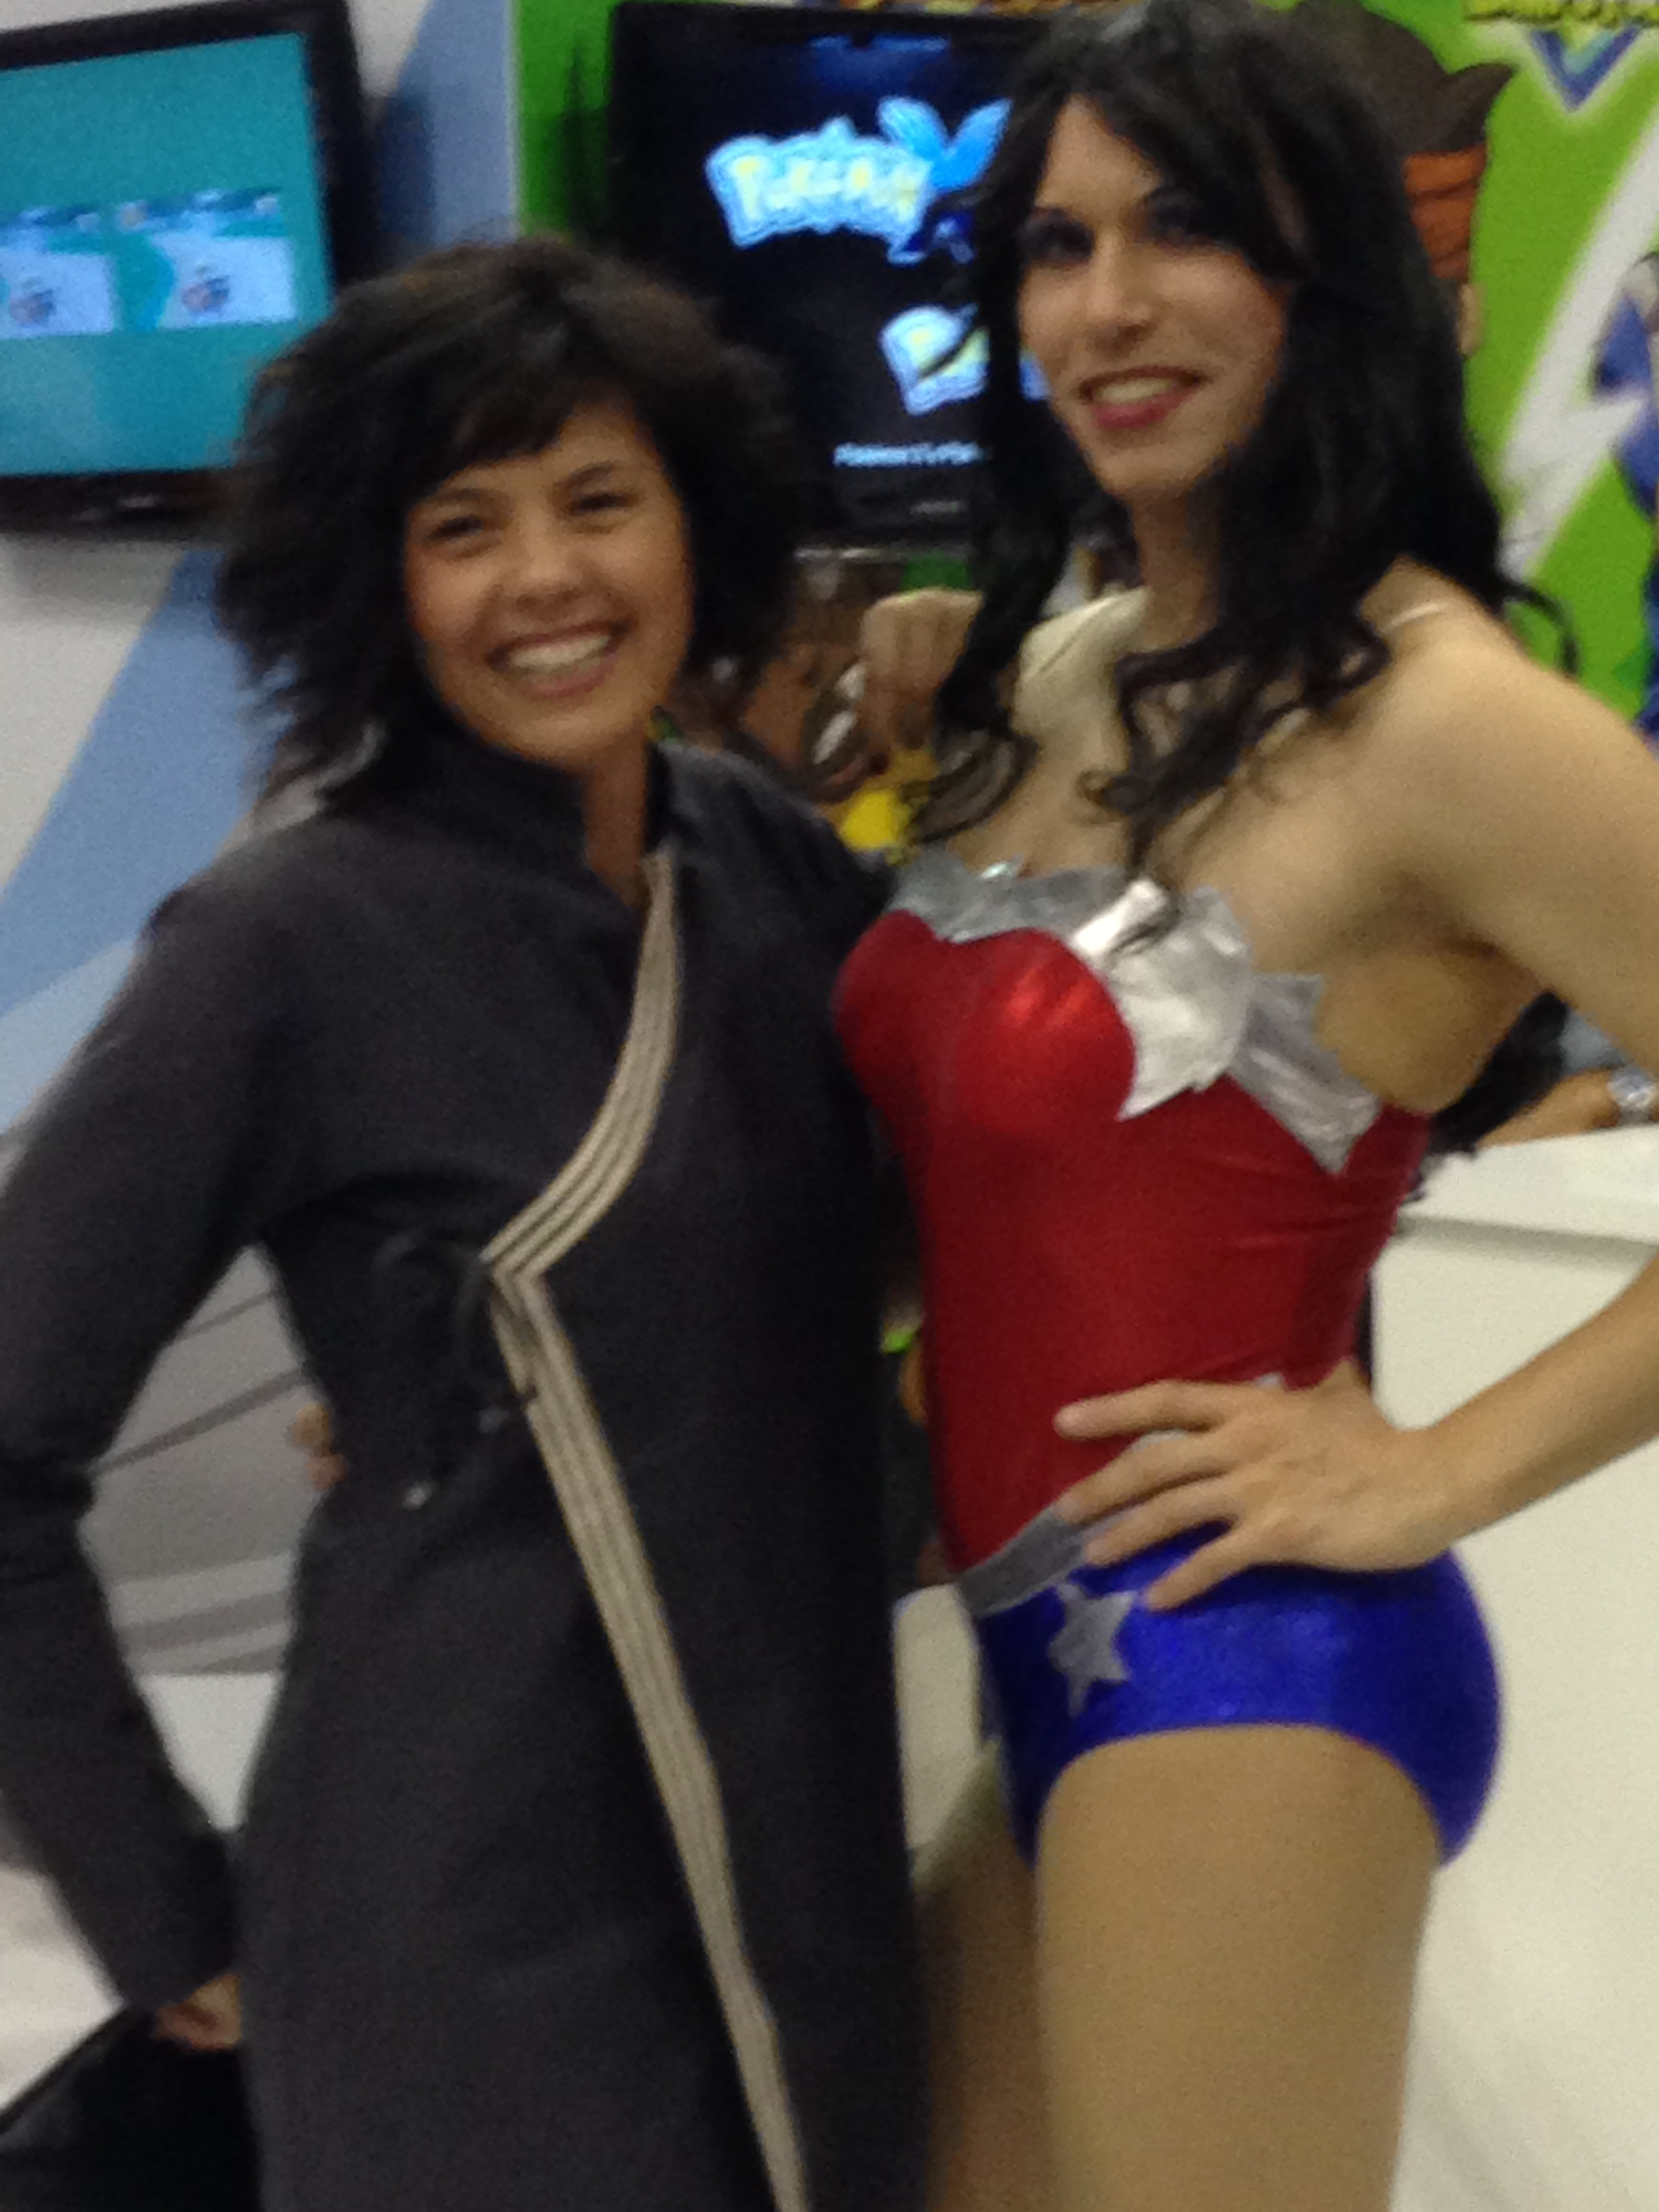 Ricordo del ROMICS: WONDER WOMAN non proprio WOMAN!